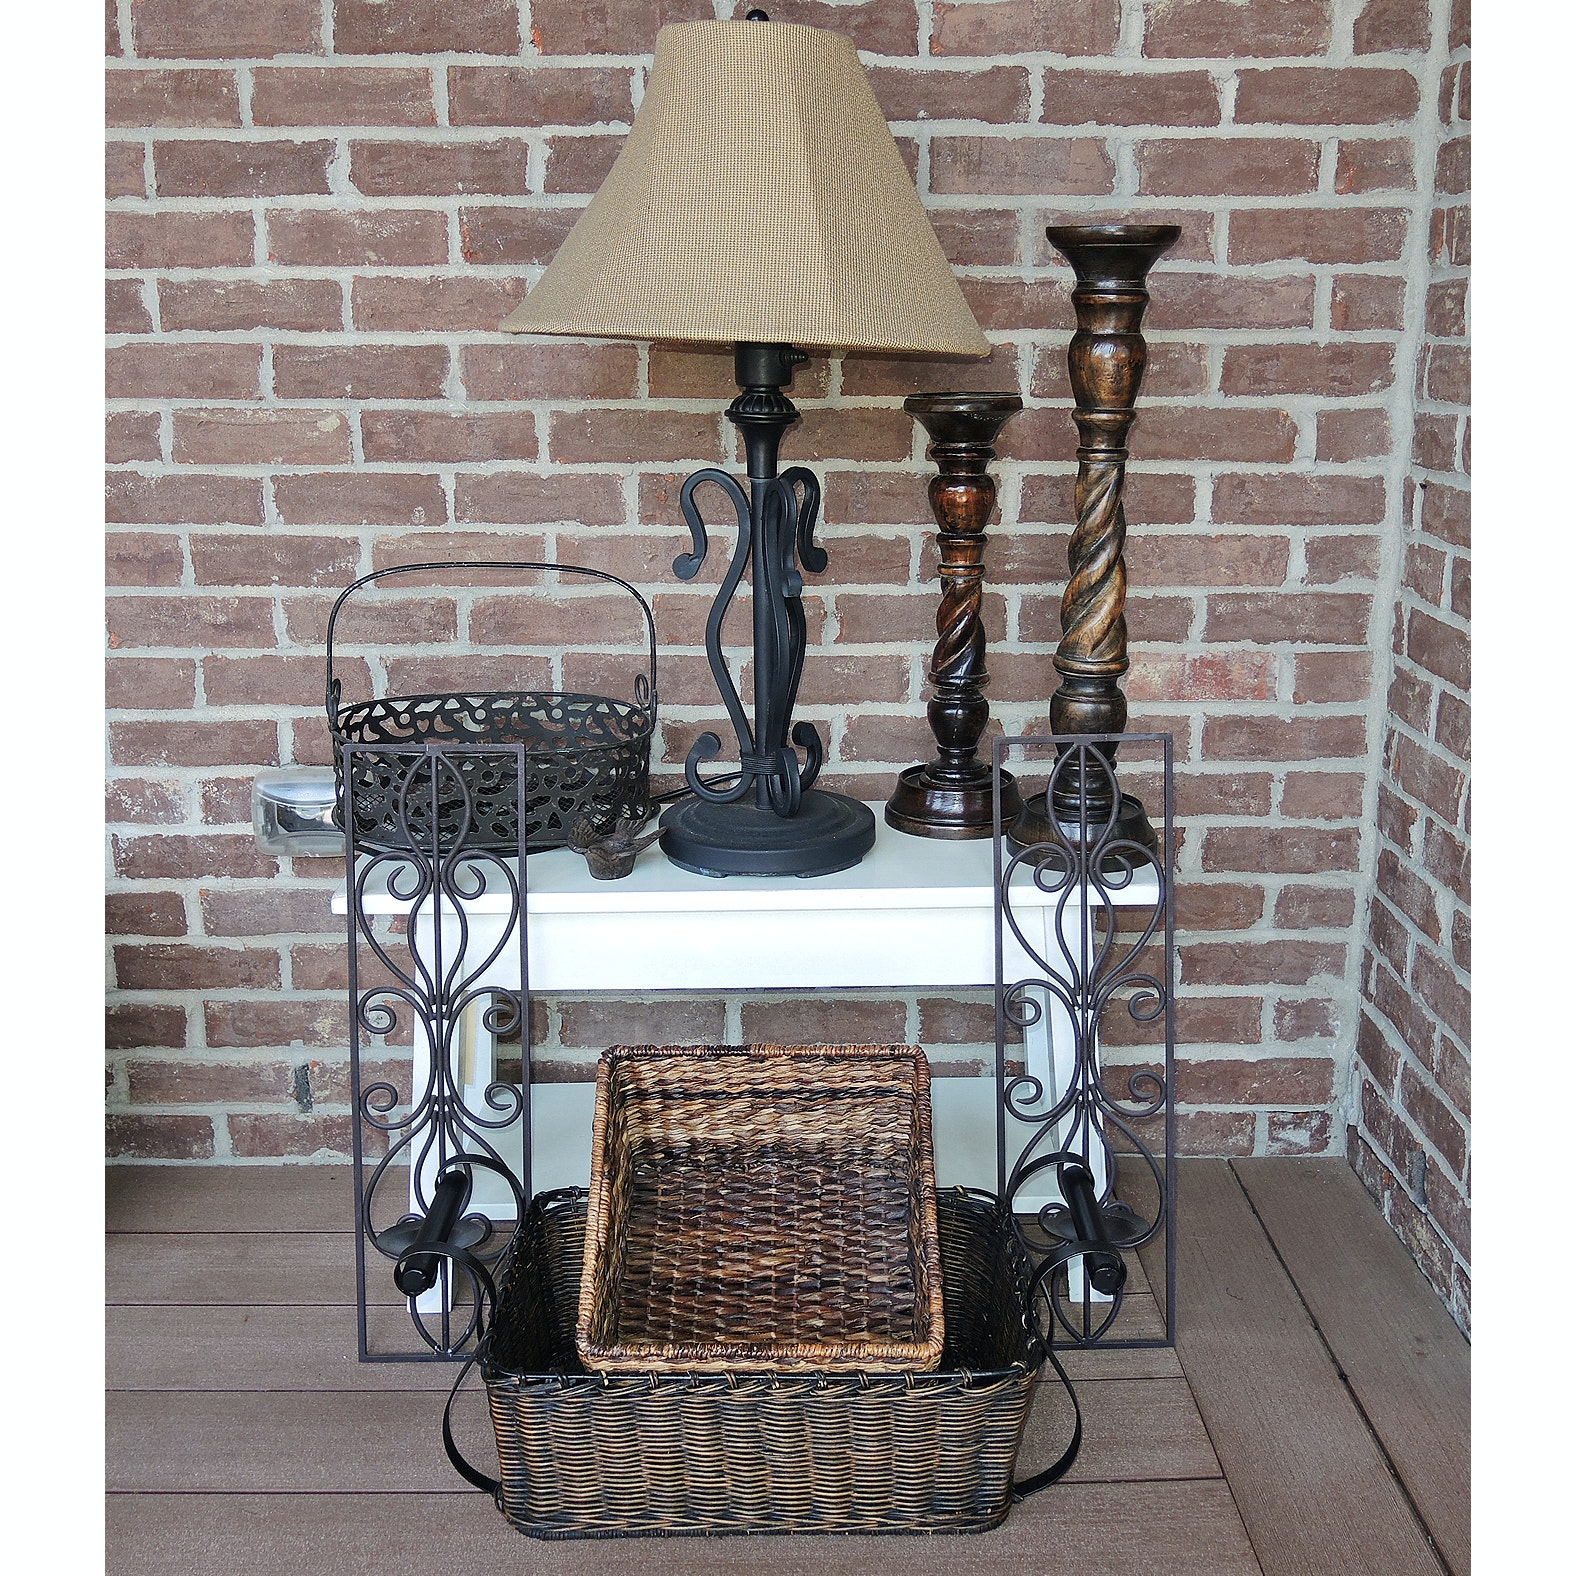 Outdoor Table Lamp and Patio Decor